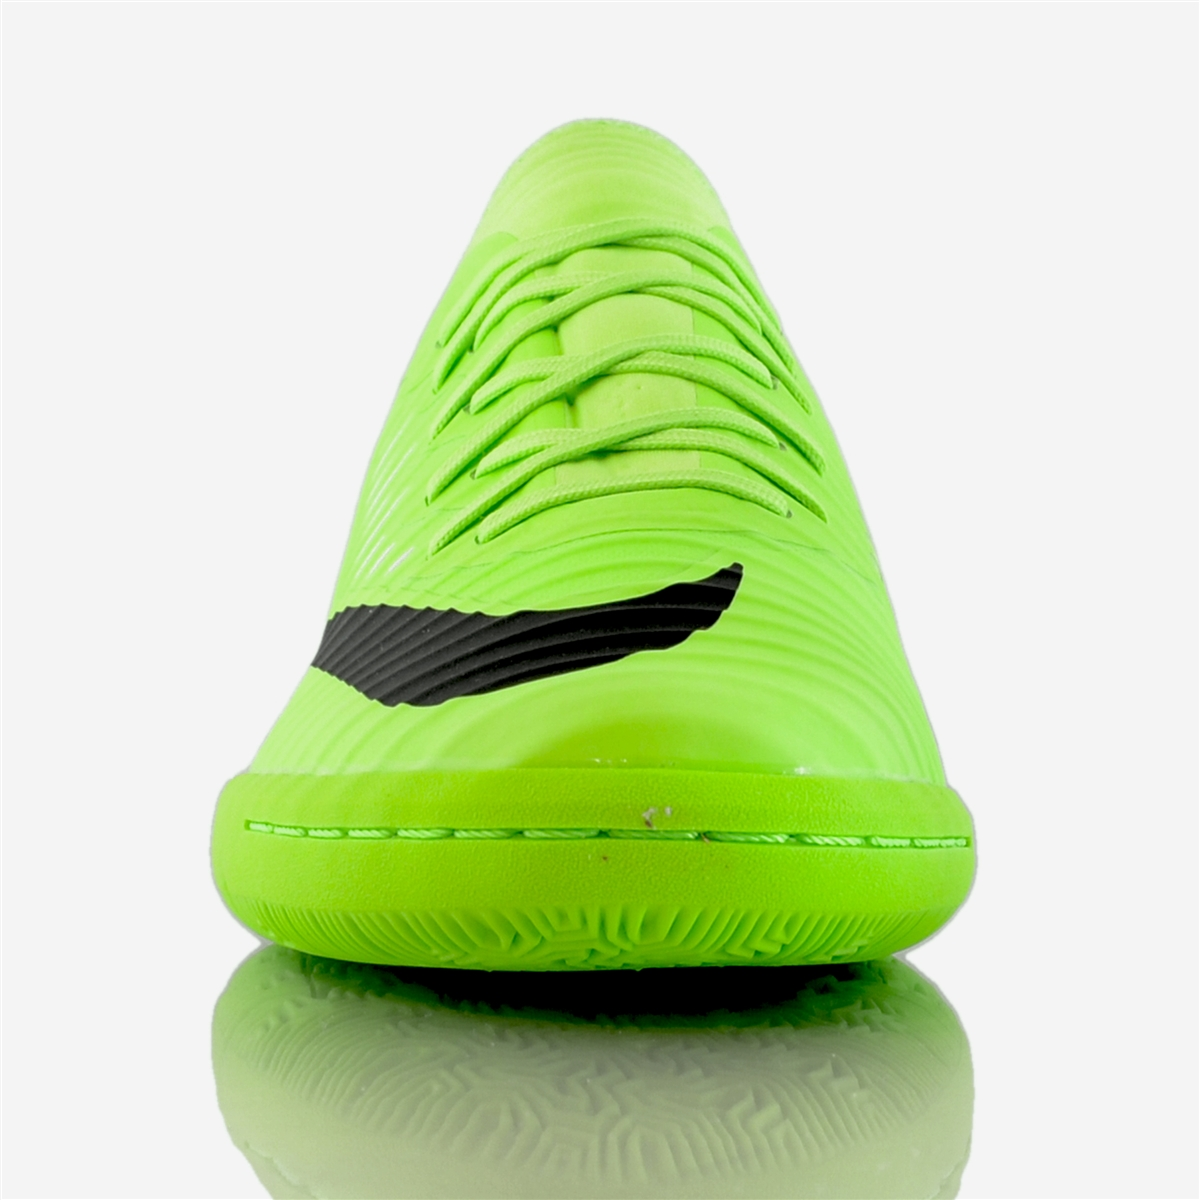 c5383b3d9 Nike MercurialX Finale II IC Indoor Soccer Shoes (Flash Lime Black White)